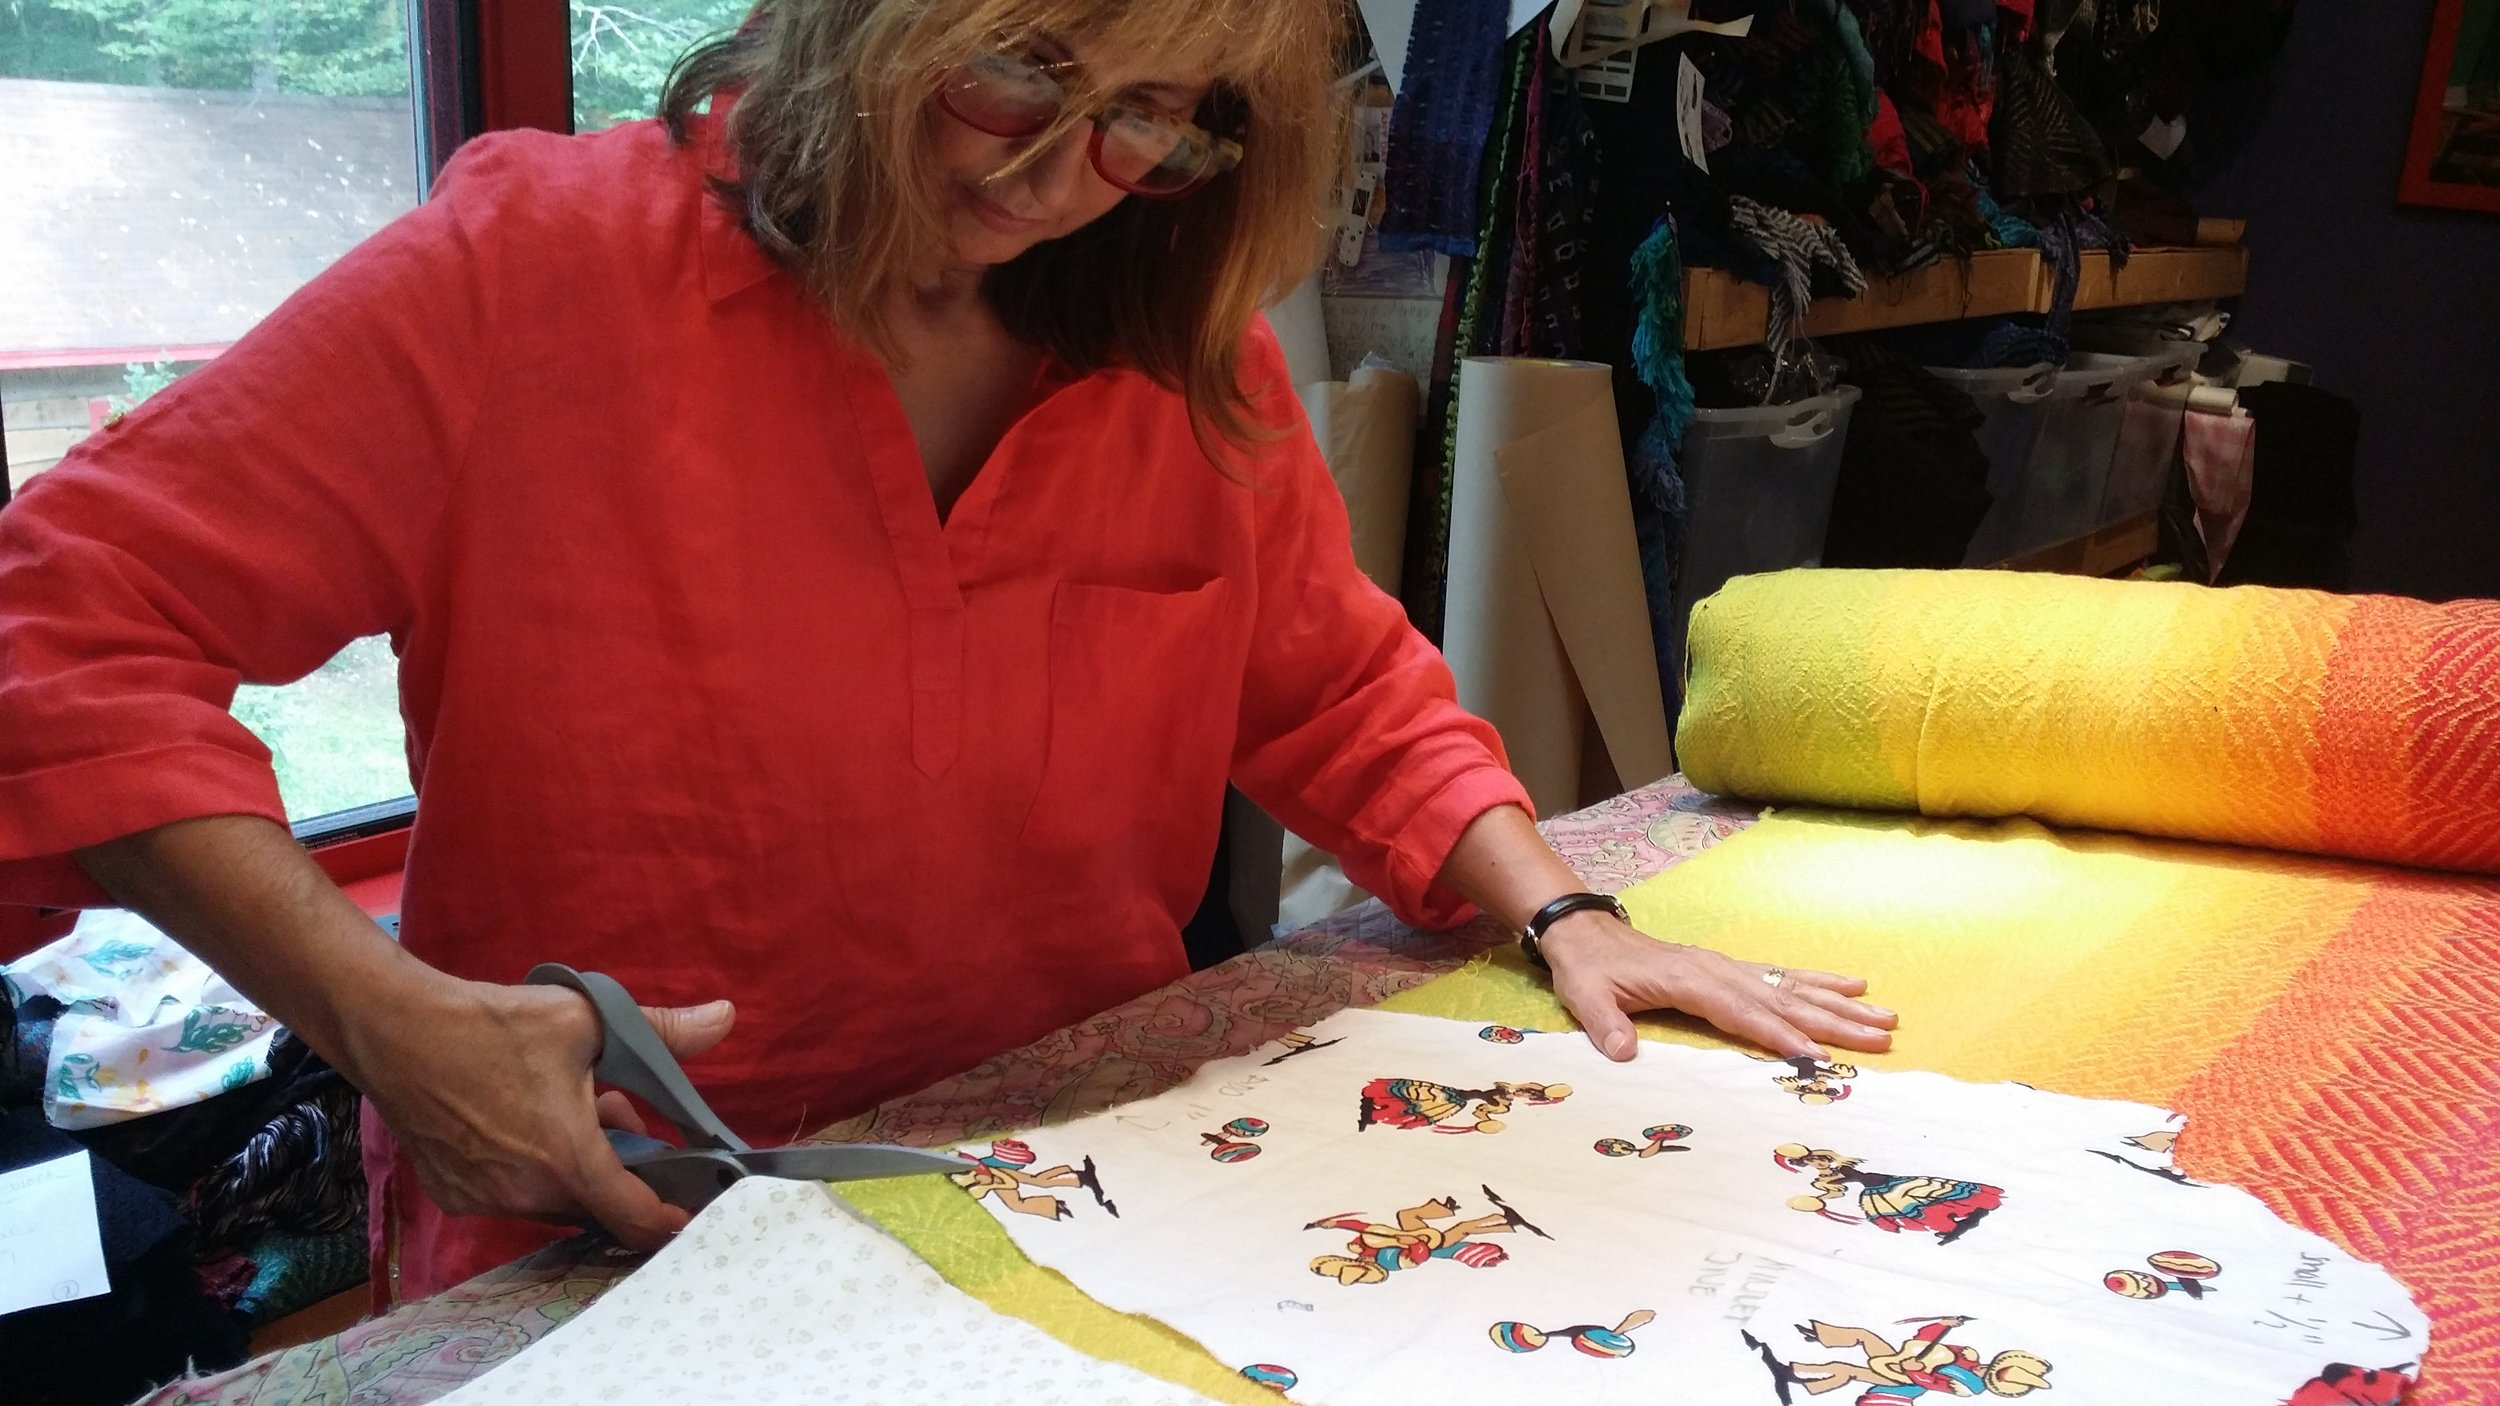 Cutting pieces, so scary - We are always developing new designs, and when we find one we love we make a pattern.This is our last chance to make any fabric combination decisions. And then we sew it up!